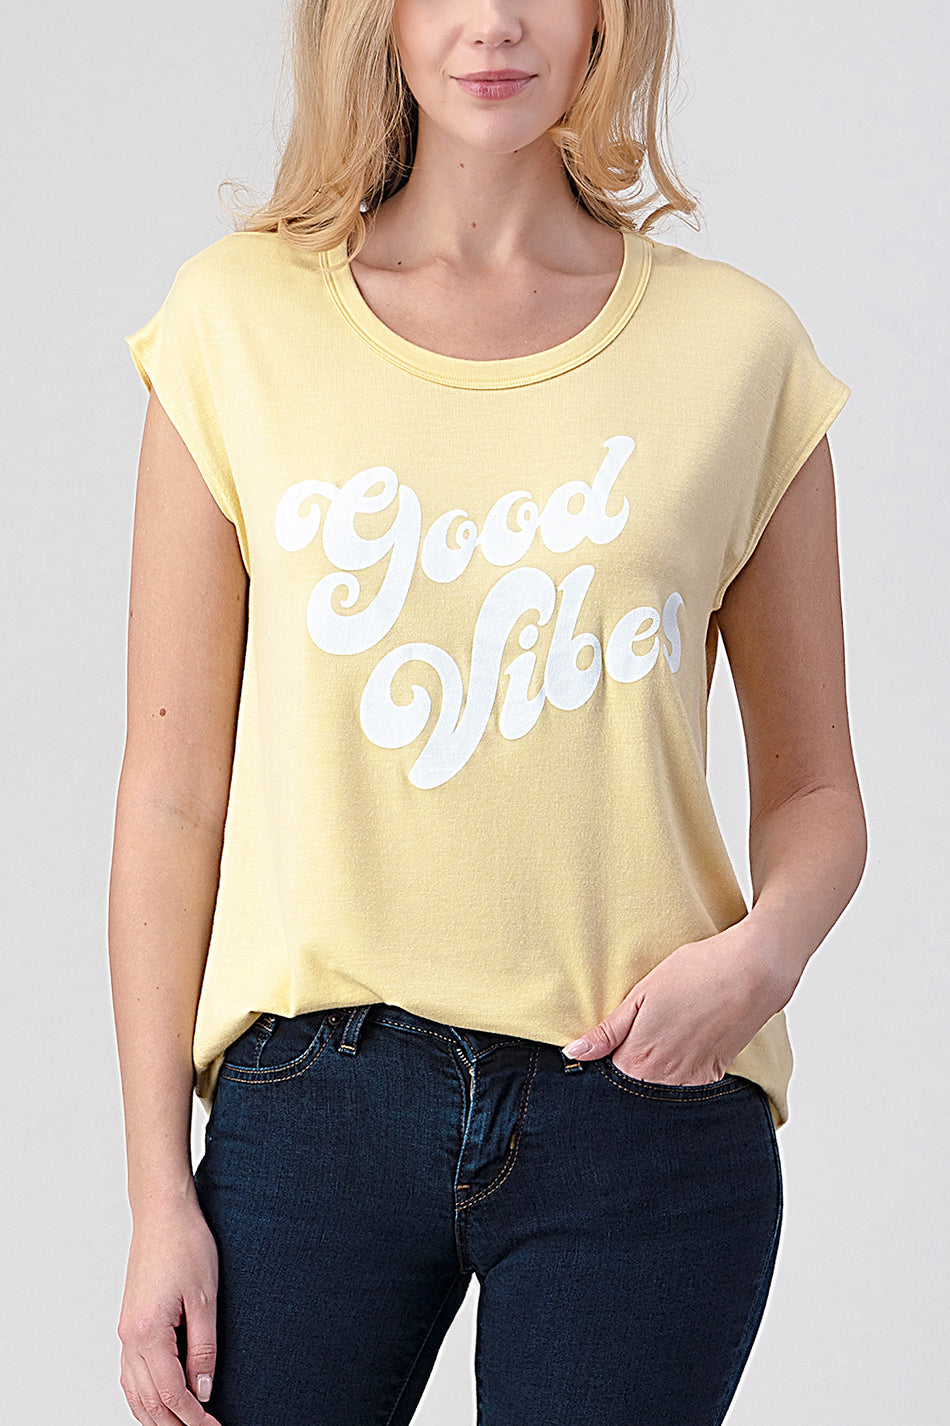 Natural Life 'Good Vibes' graphic tee made in USA